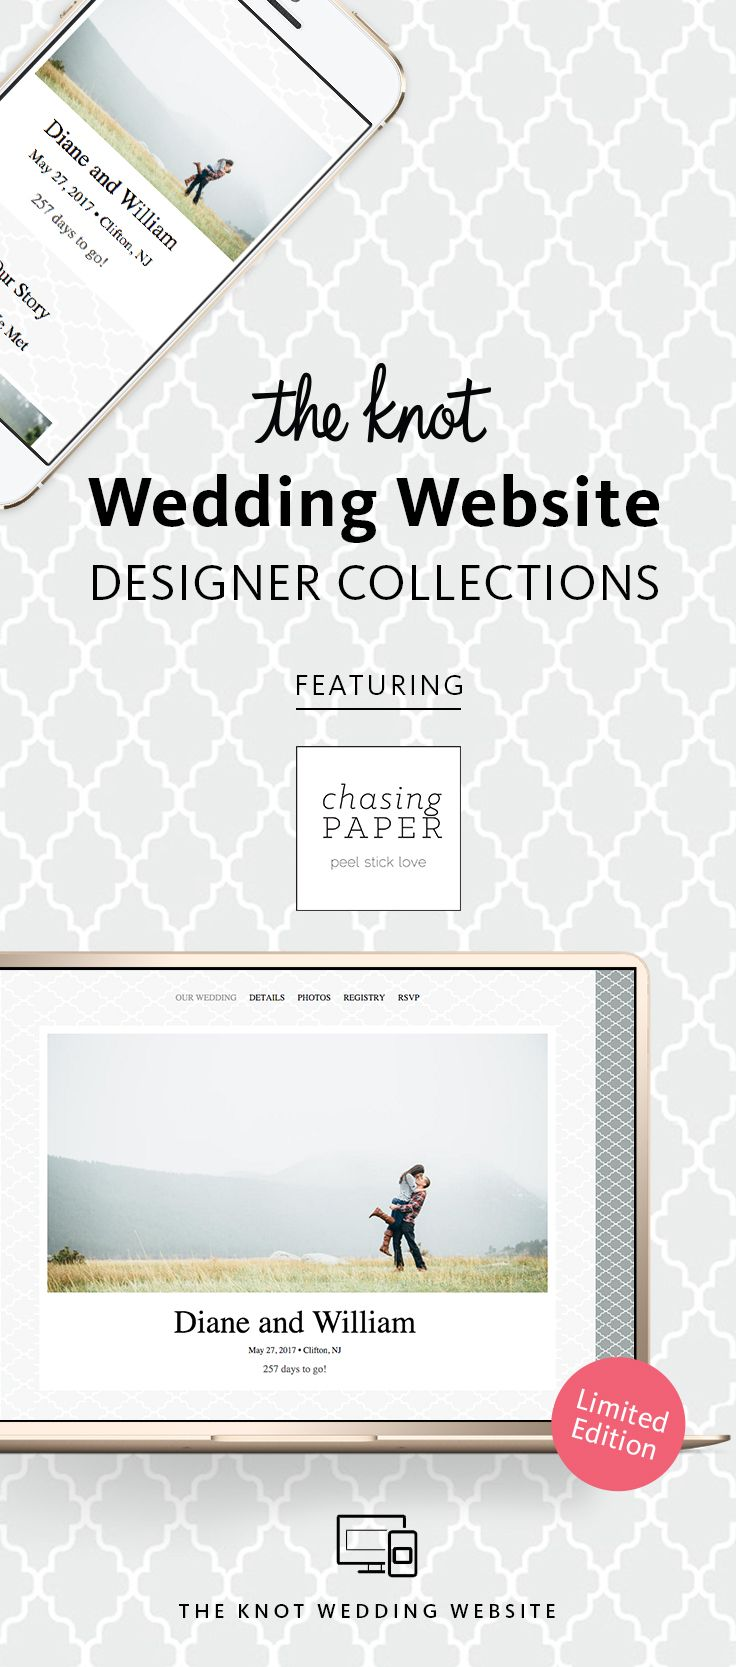 Best wedding website options